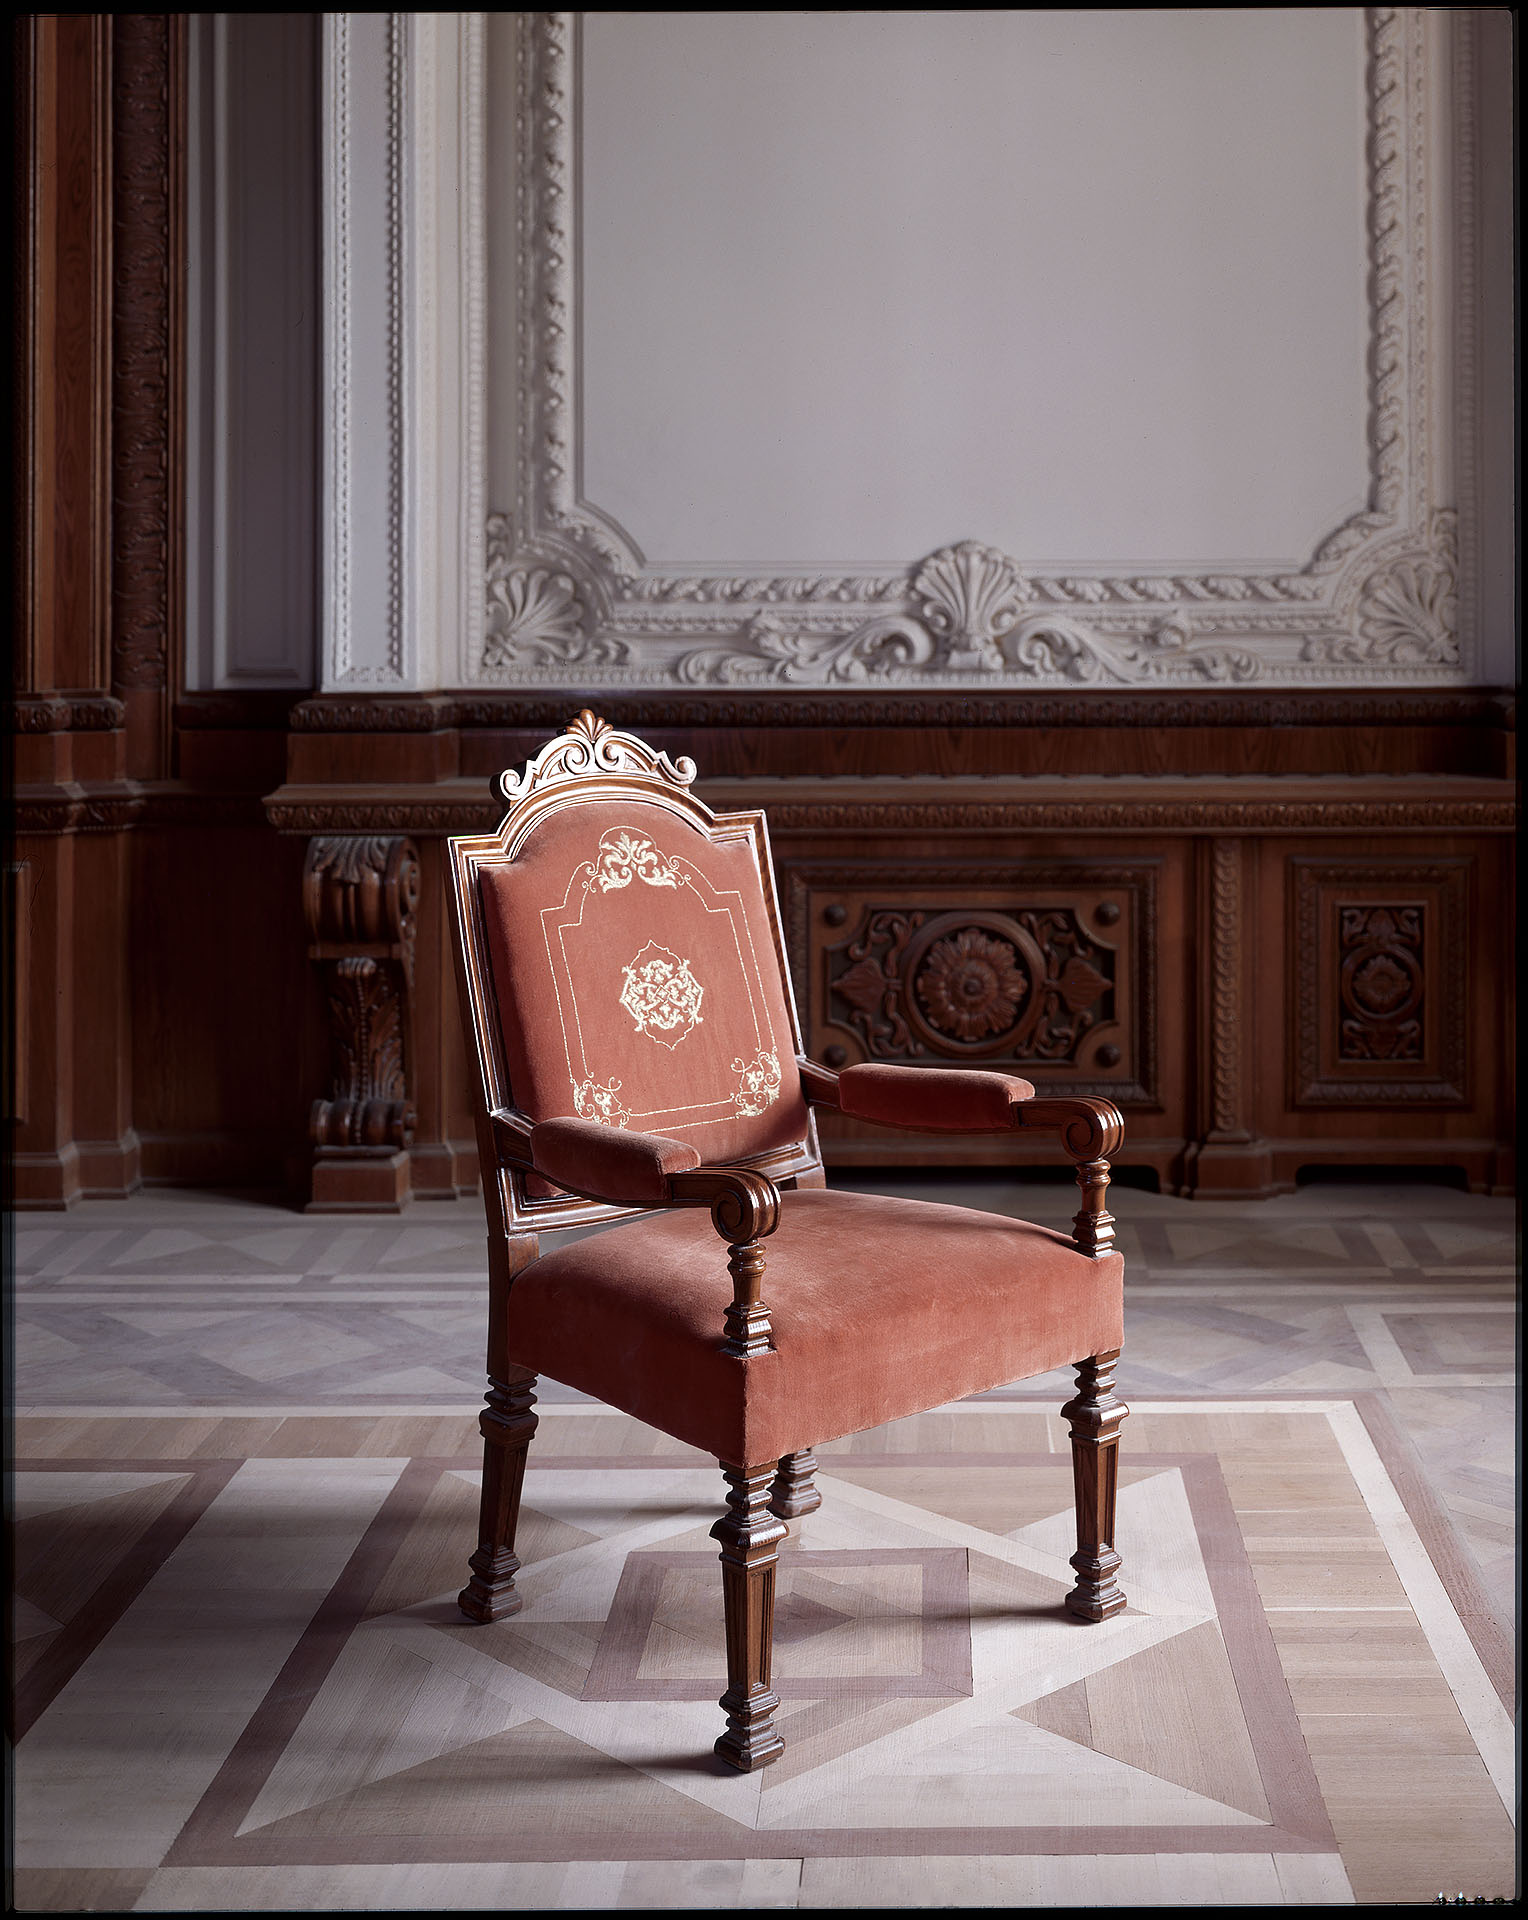 Ceausescu's chair